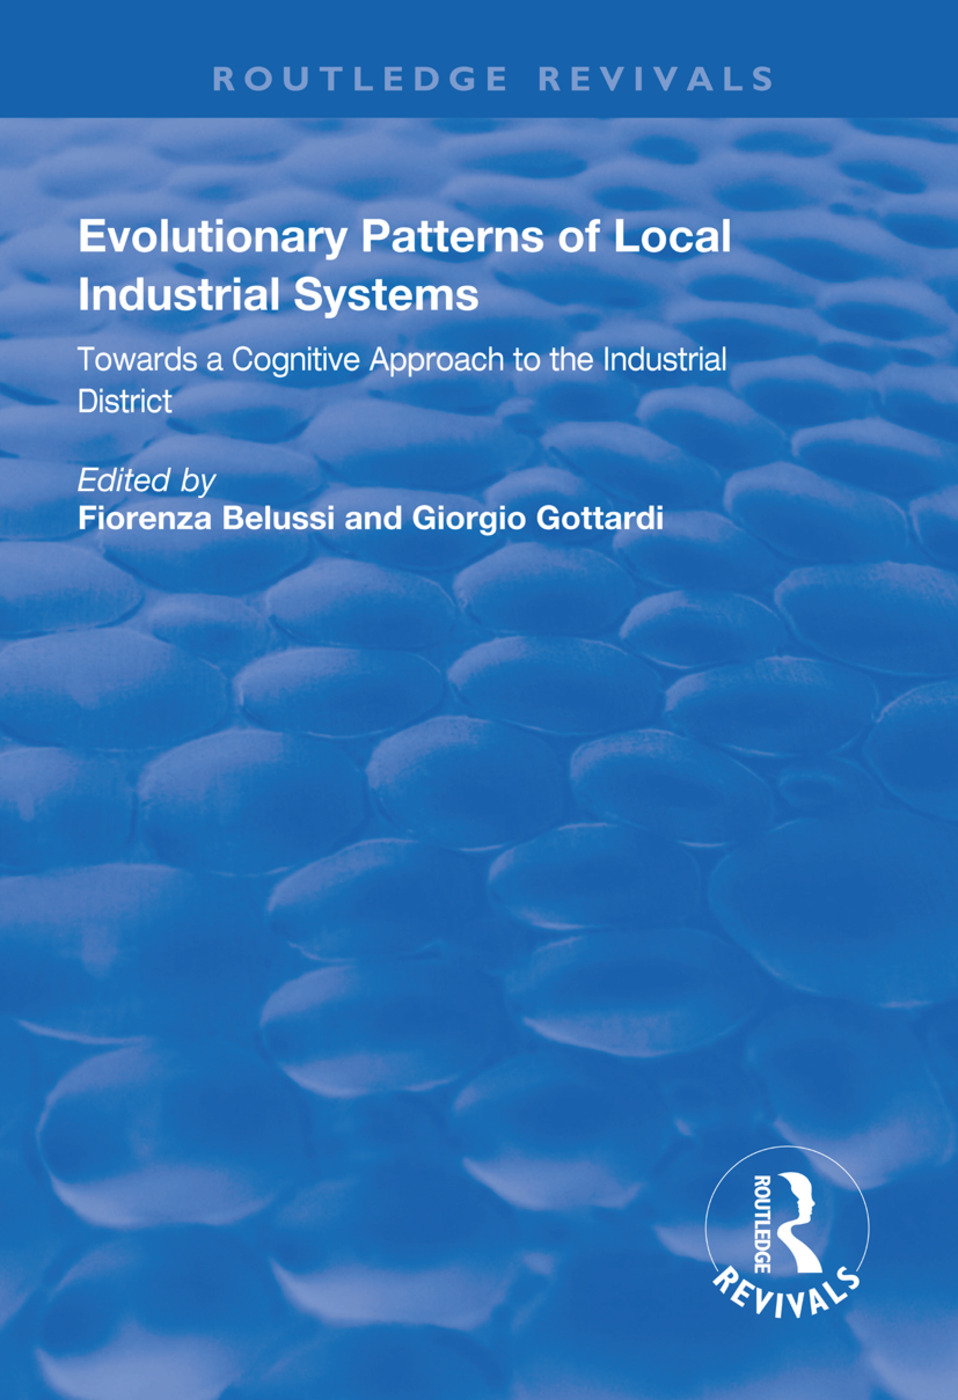 Evolutionary Patterns of Local Industrial Systems